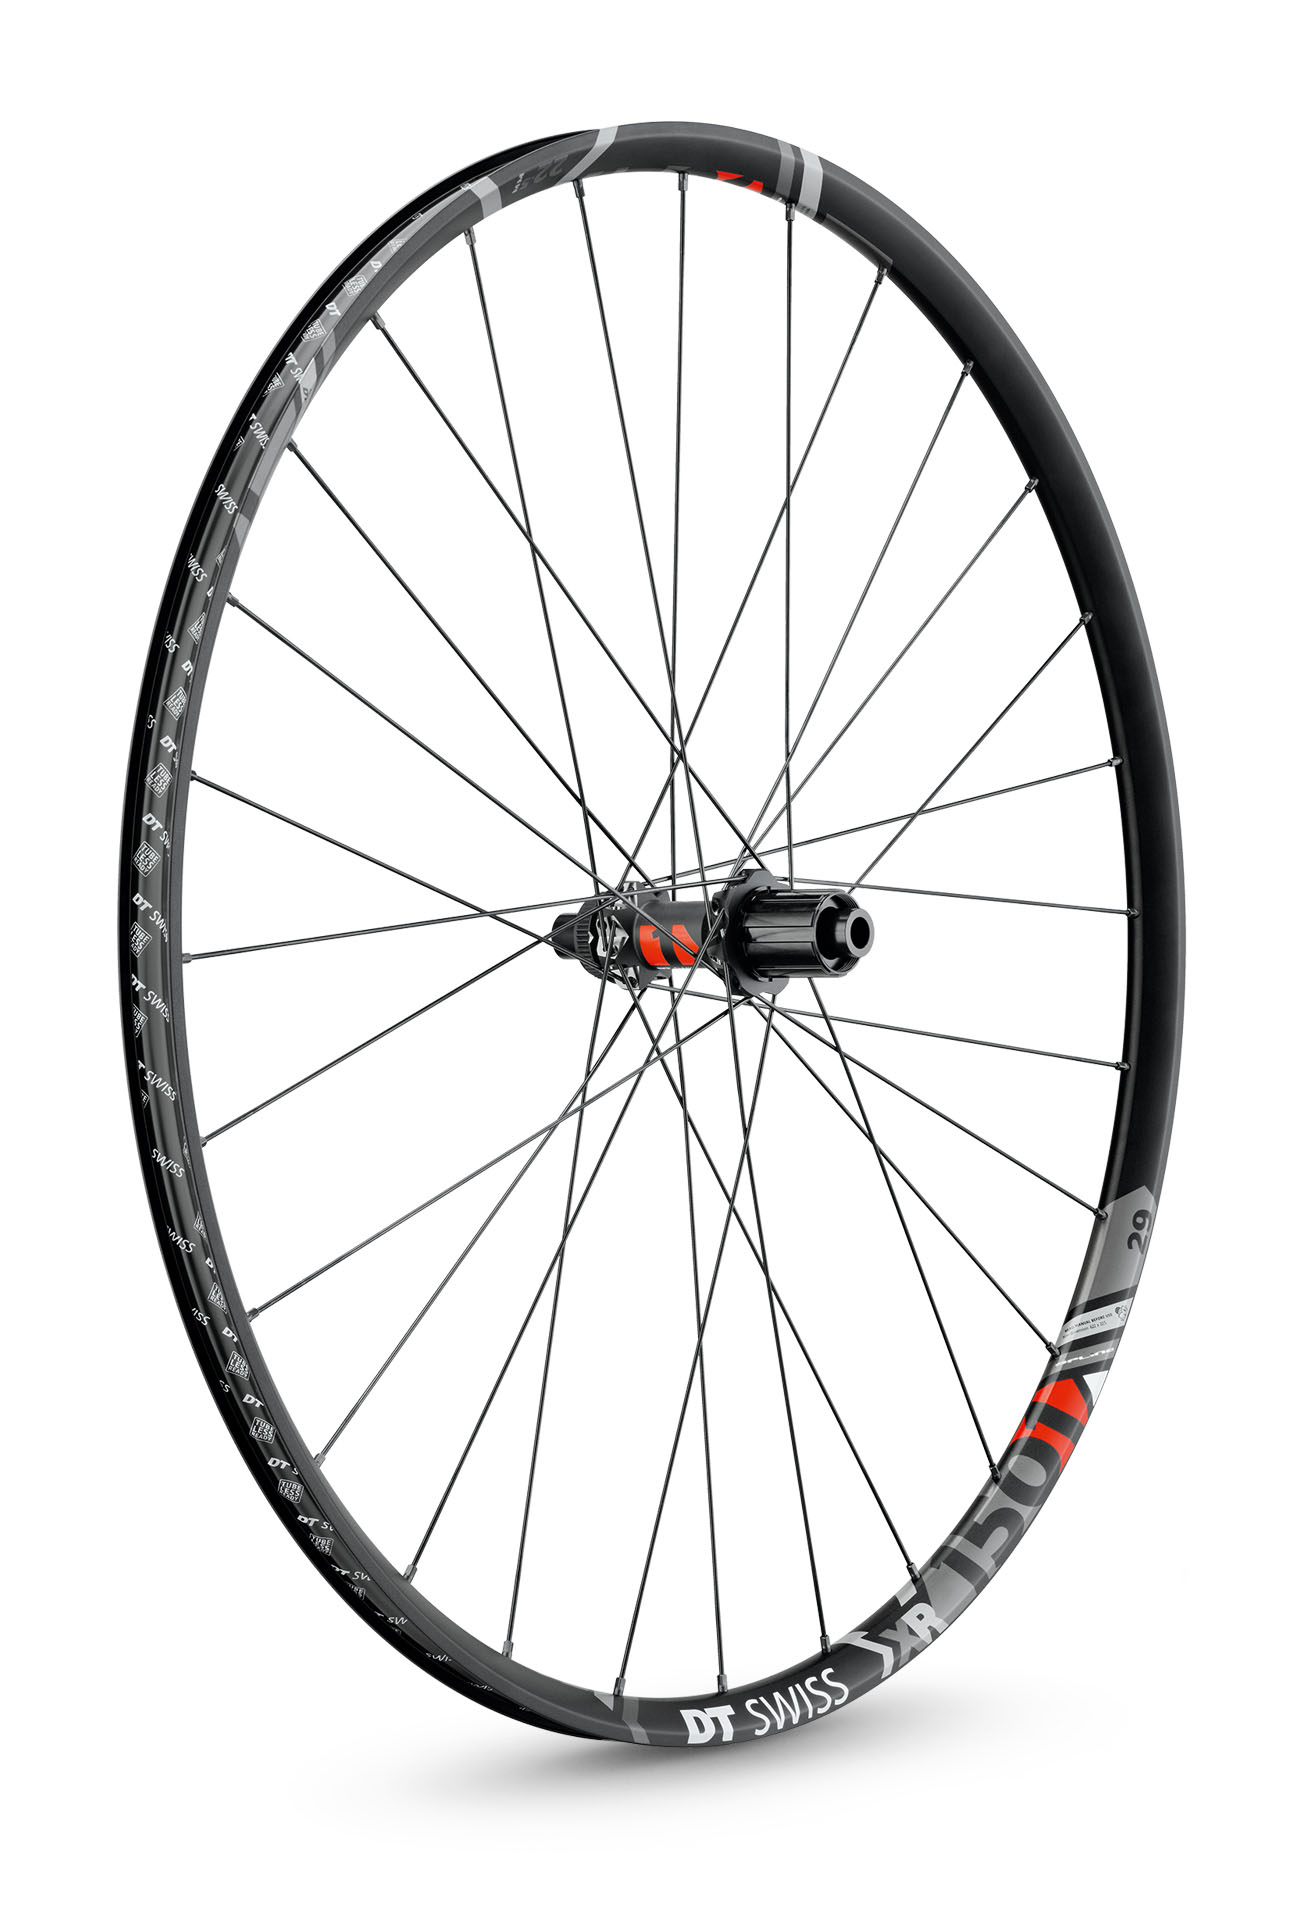 DT Swiss Roue Cross Country XR 1501 SP 29 CL 225 12/148 ASL